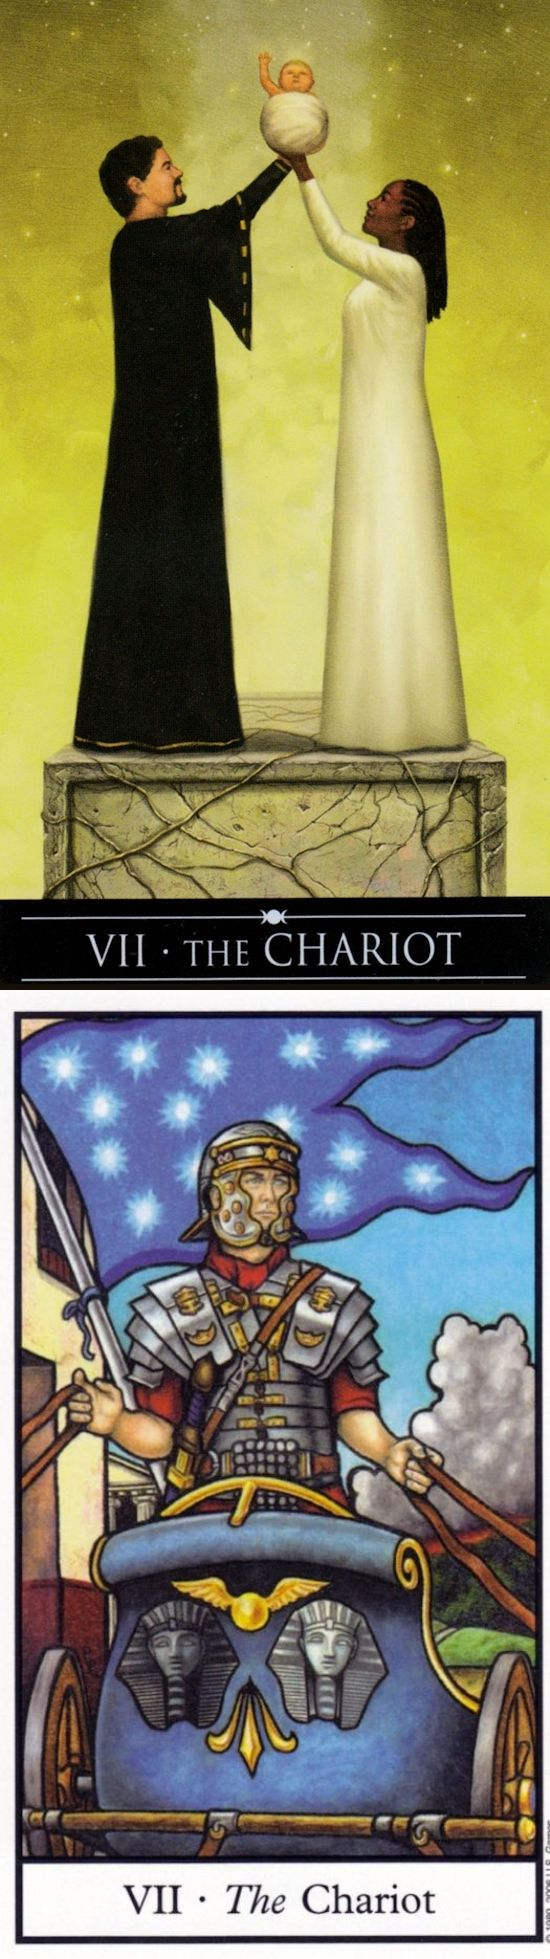 THE CHARIOT: willpower leading to victory and lack of direction (reverse). Silver Witchcraft Tarot deck and Connolly Tarot deck: tarot reading, golden universaltarot vs free online tarot reading predictions. The best tarot decks cards and predictions of next war. # #iosapplication #intuition #lovers #Wiccan #halloweenmakeup